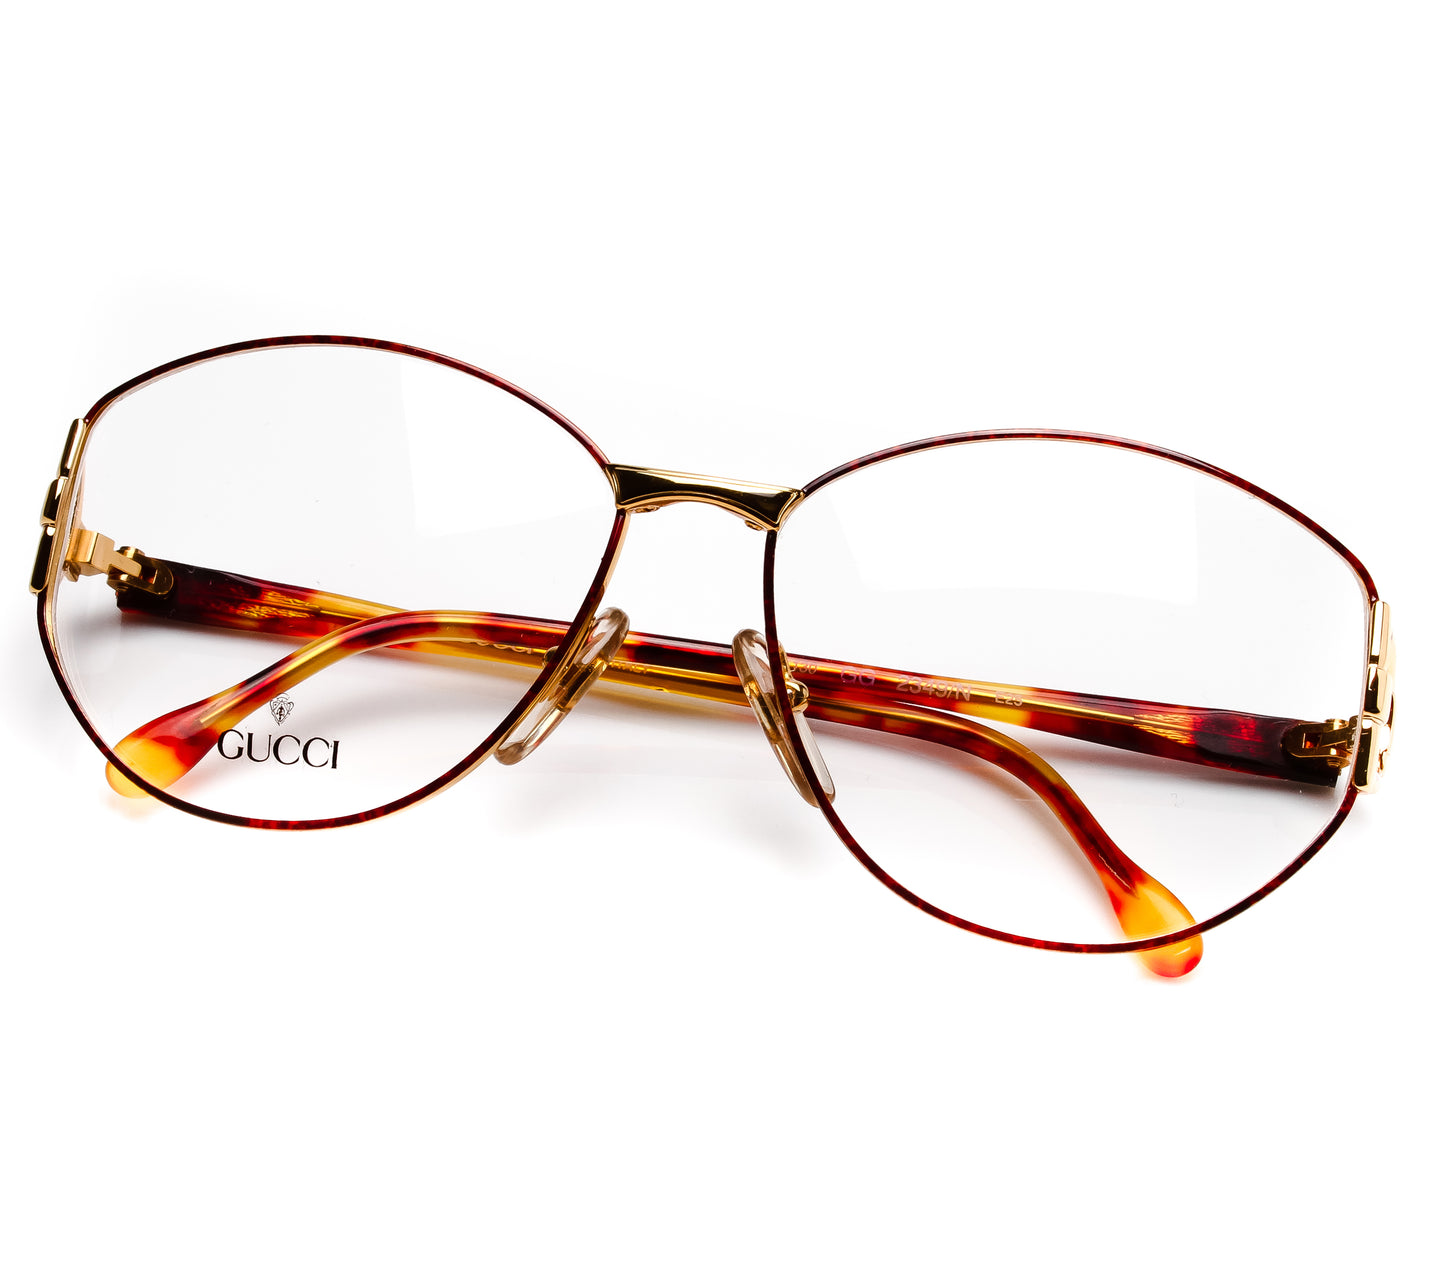 Gucci 2349/N E25 Thumbnail, Gucci , glasses frames, eyeglasses online, eyeglass frames, mens glasses, womens glasses, buy glasses online, designer eyeglasses, vintage sunglasses, retro sunglasses, vintage glasses, sunglass, eyeglass, glasses, lens, vintage frames company, vf